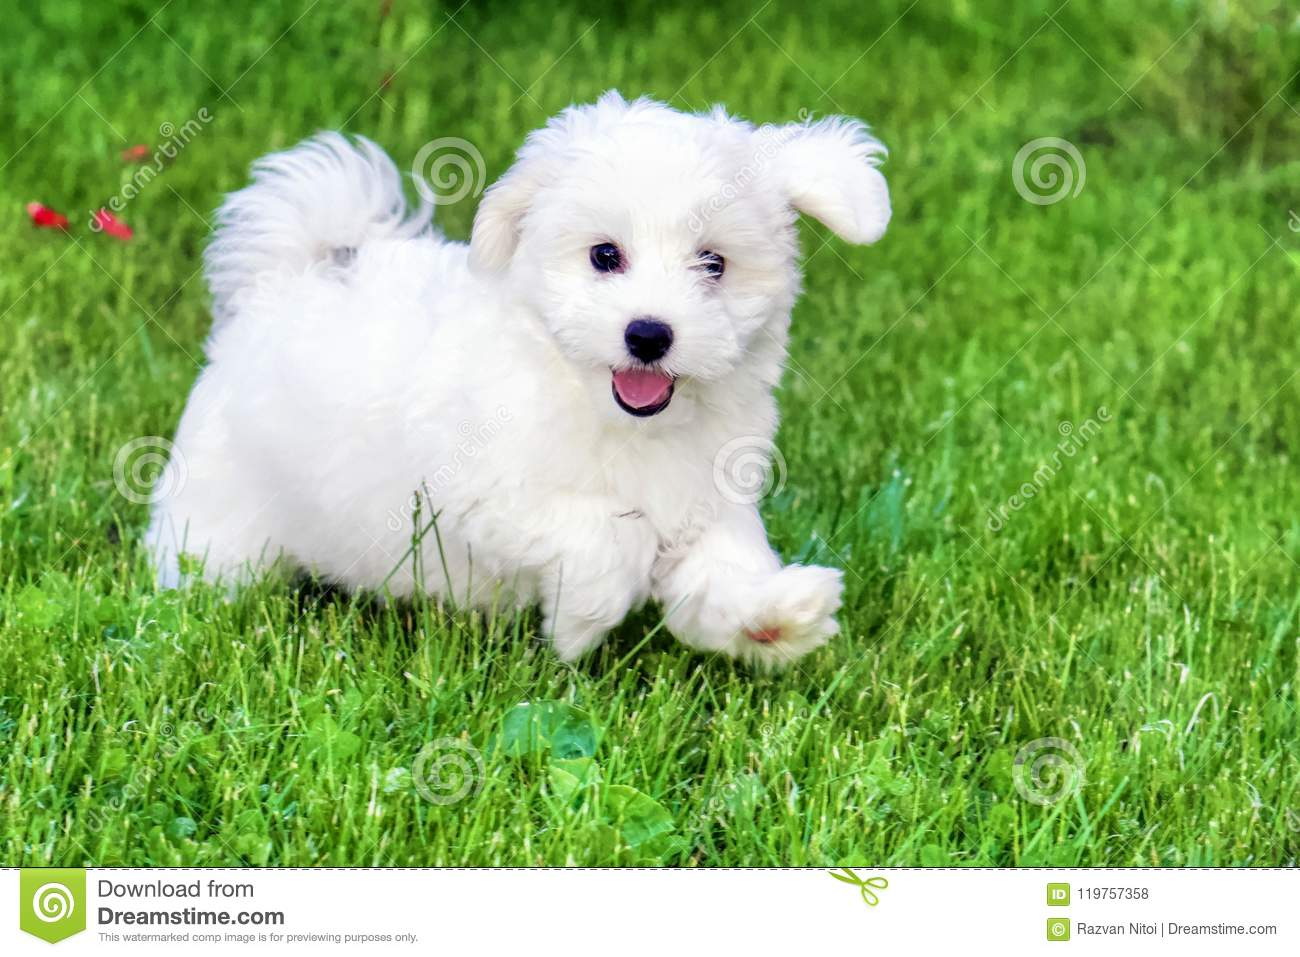 Adorable White Bichon Frise Puppy Playing In Grass Stock